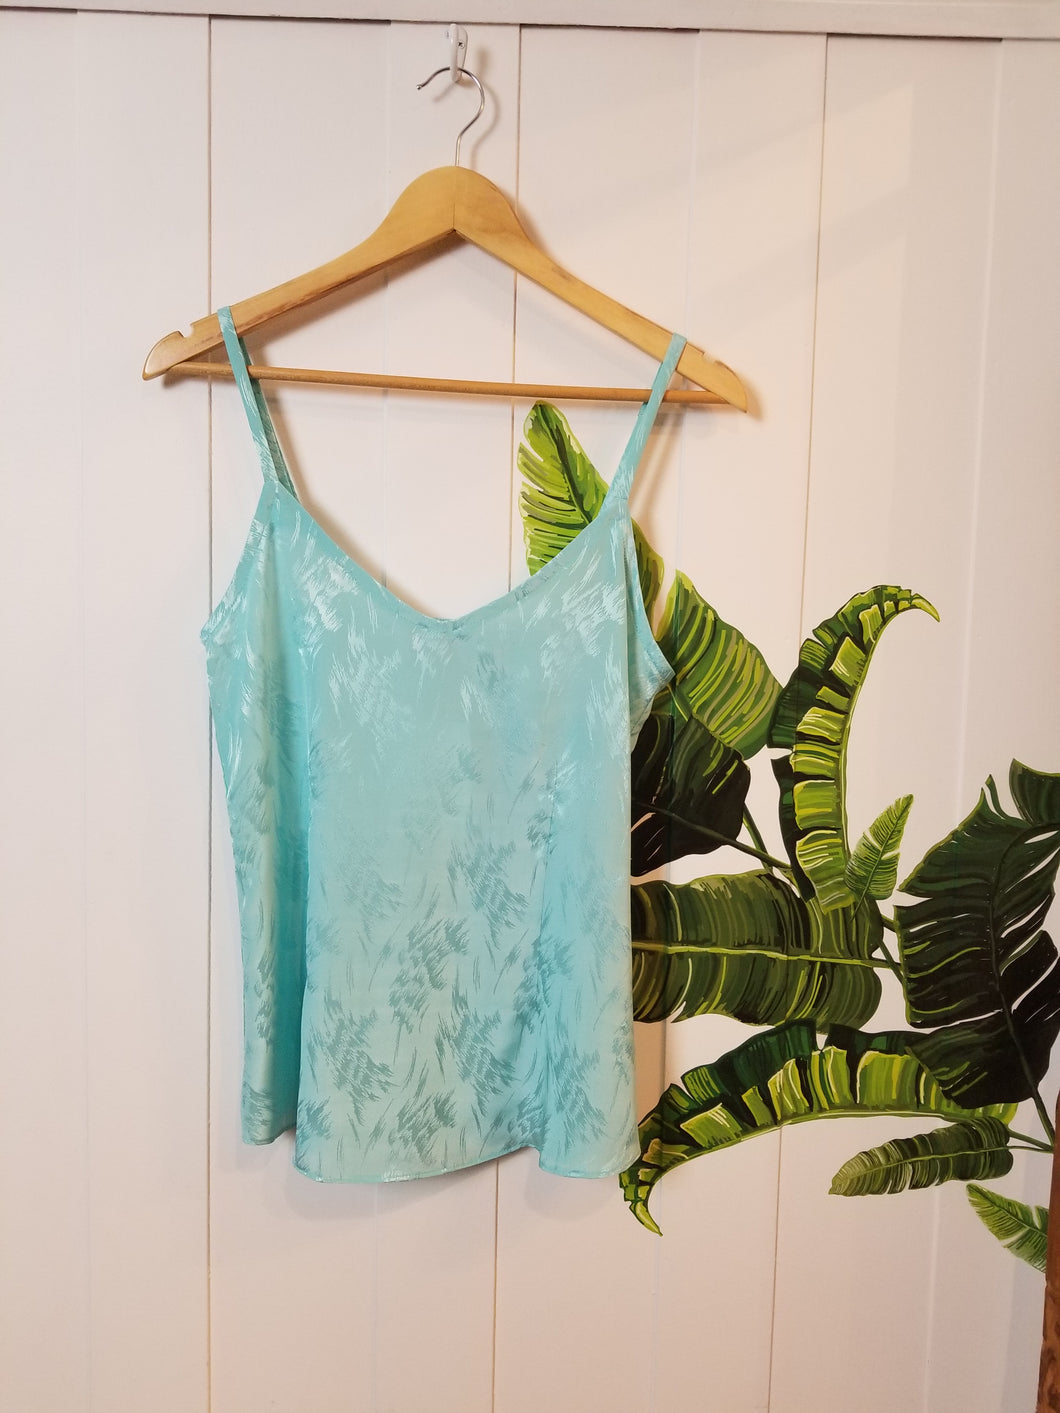 SUMMERLOVIN' RETRO CAMI | Sky Blue Satin (Size 2) or Dusty Pink Satin (Size 6)